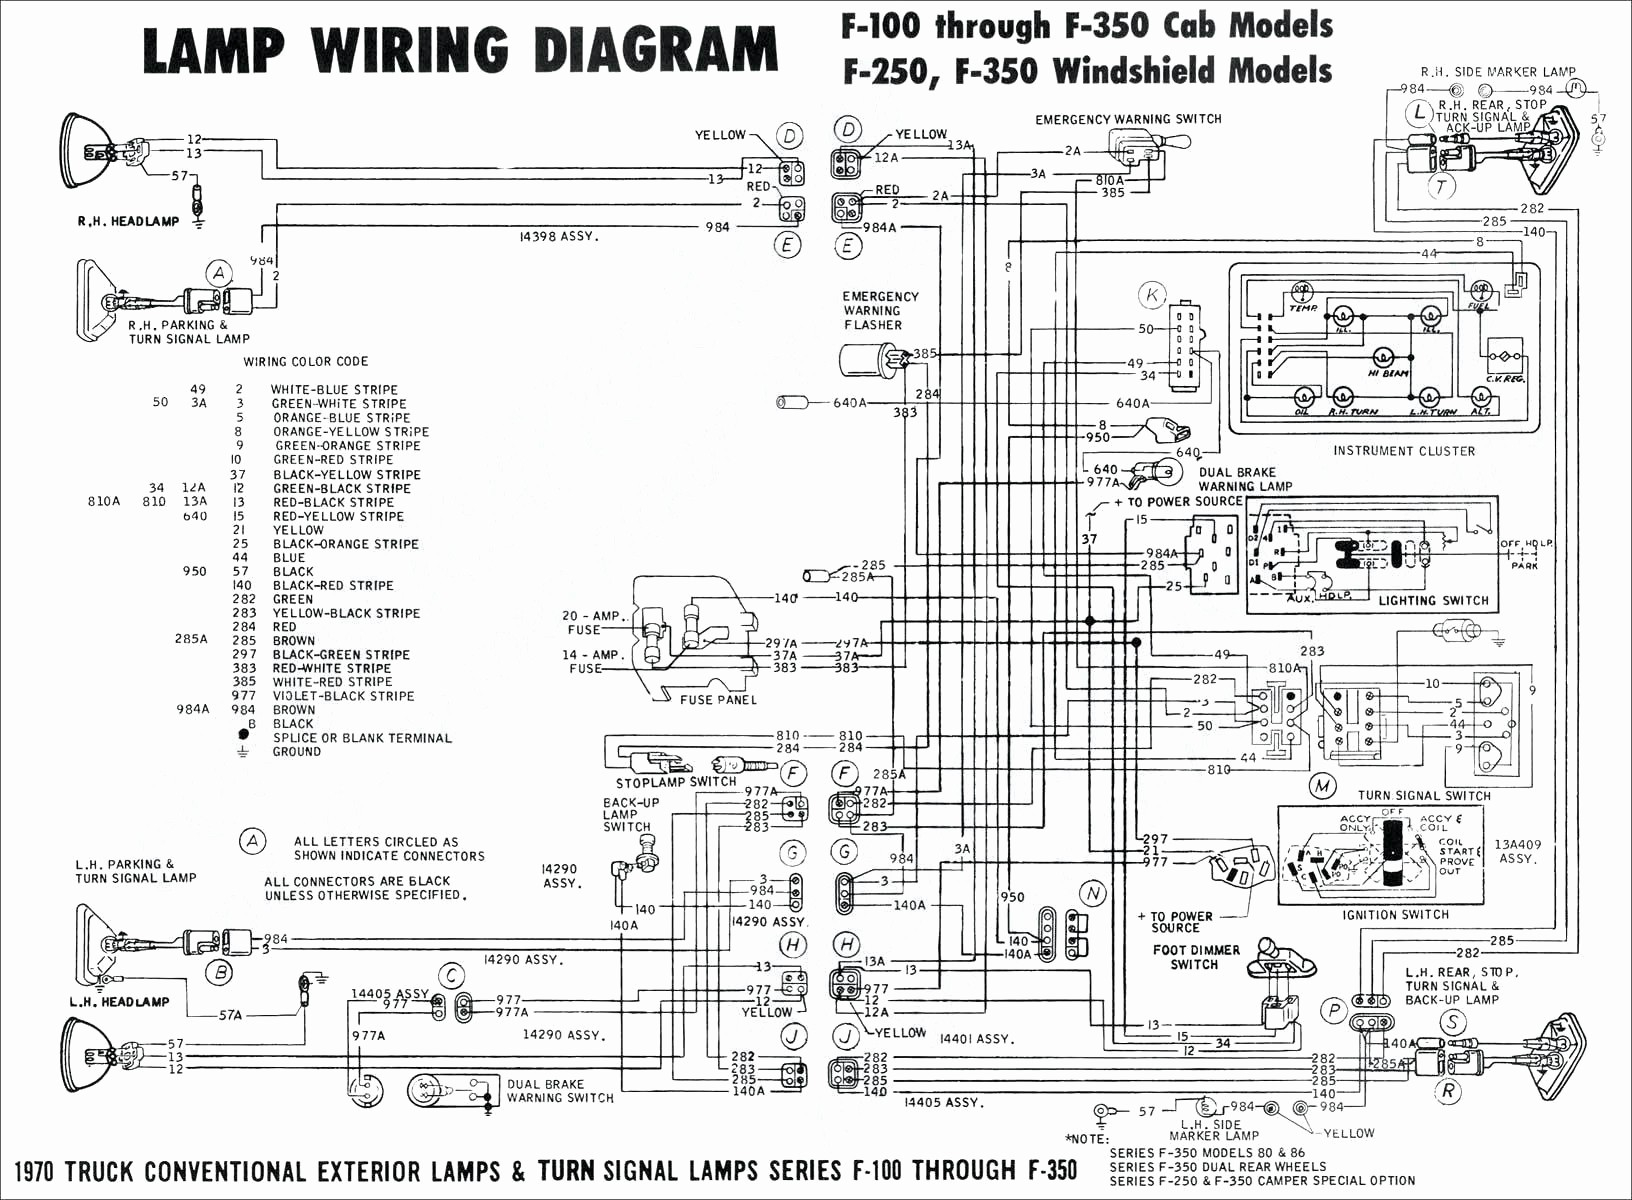 bose pcb assy 100w wiring diagram Collection-2005 f350 ficm wiring diagram wire center u2022 rh 207 246 81 177 13-p